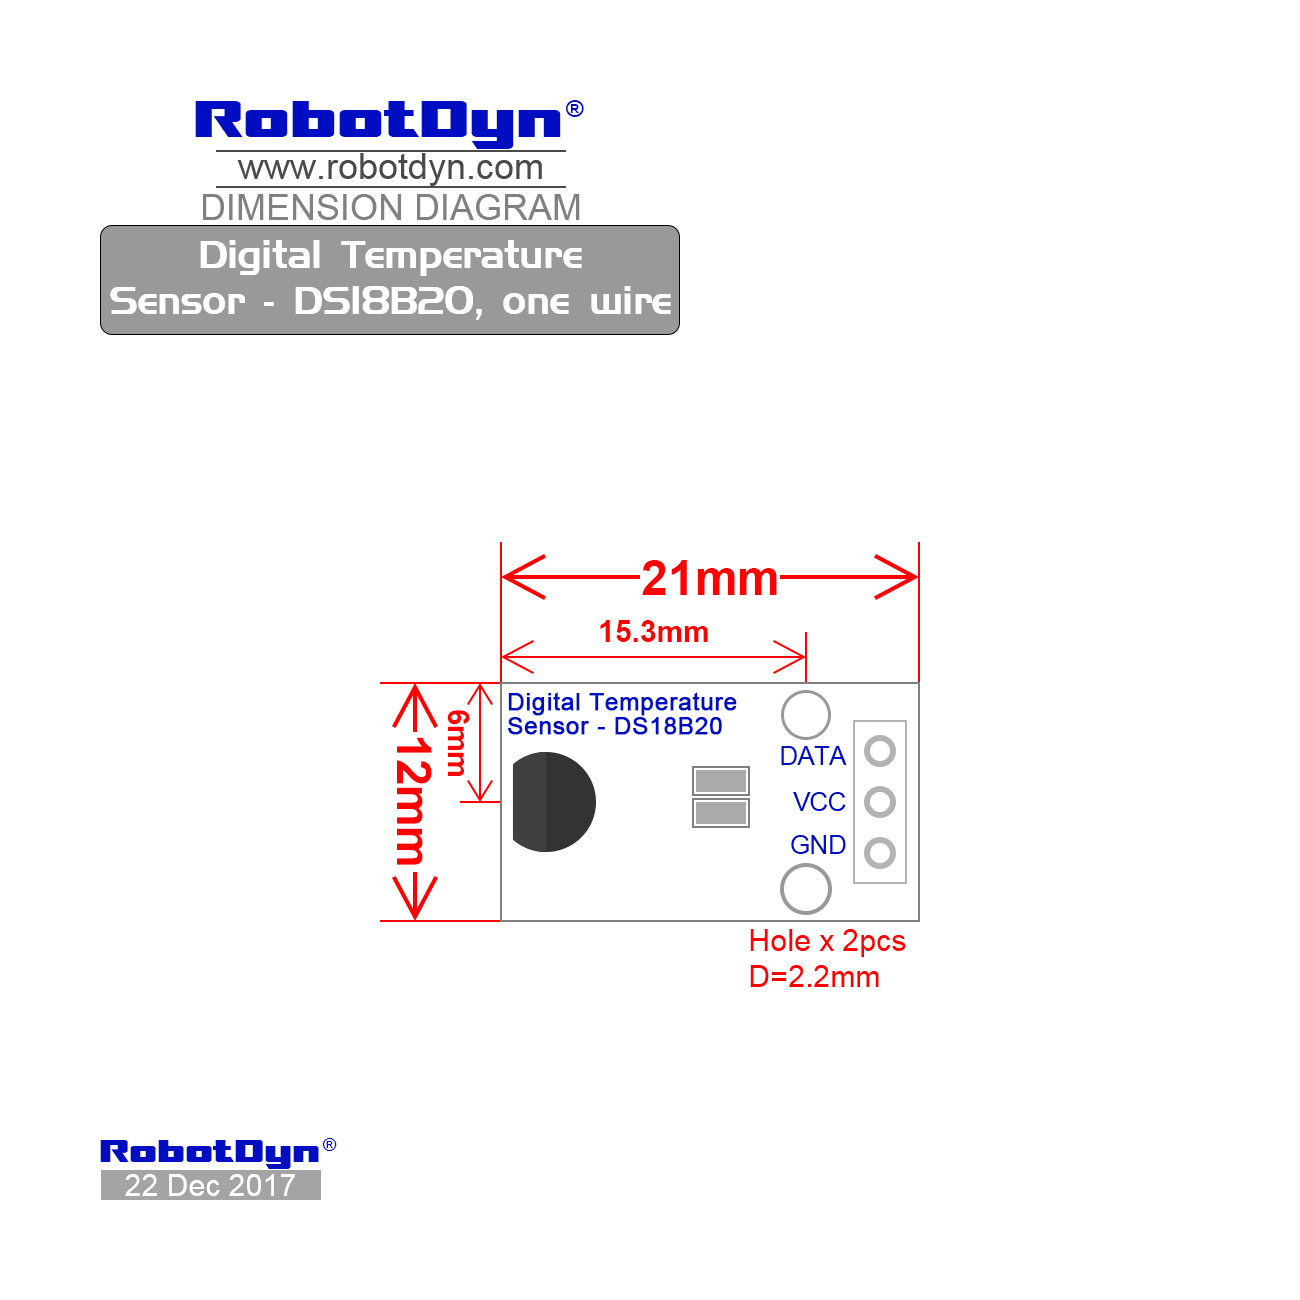 hight resolution of dimensions digital temperature sensor ds18b20 one wire